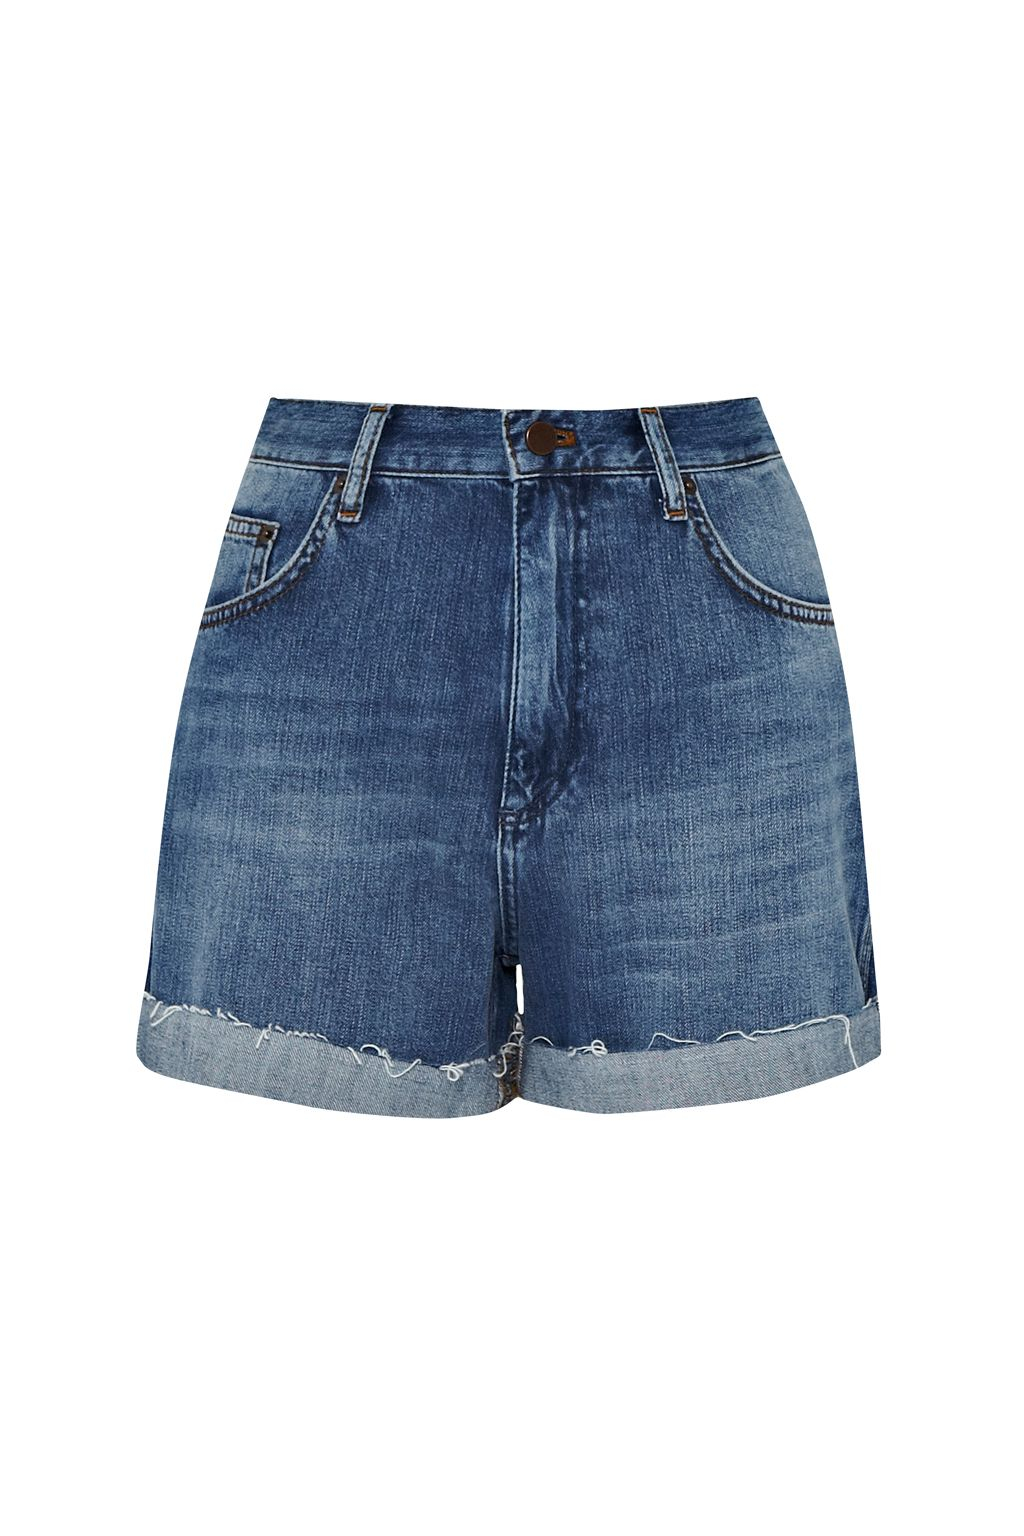 French connection Cut-off Denim Shorts in Blue | Lyst